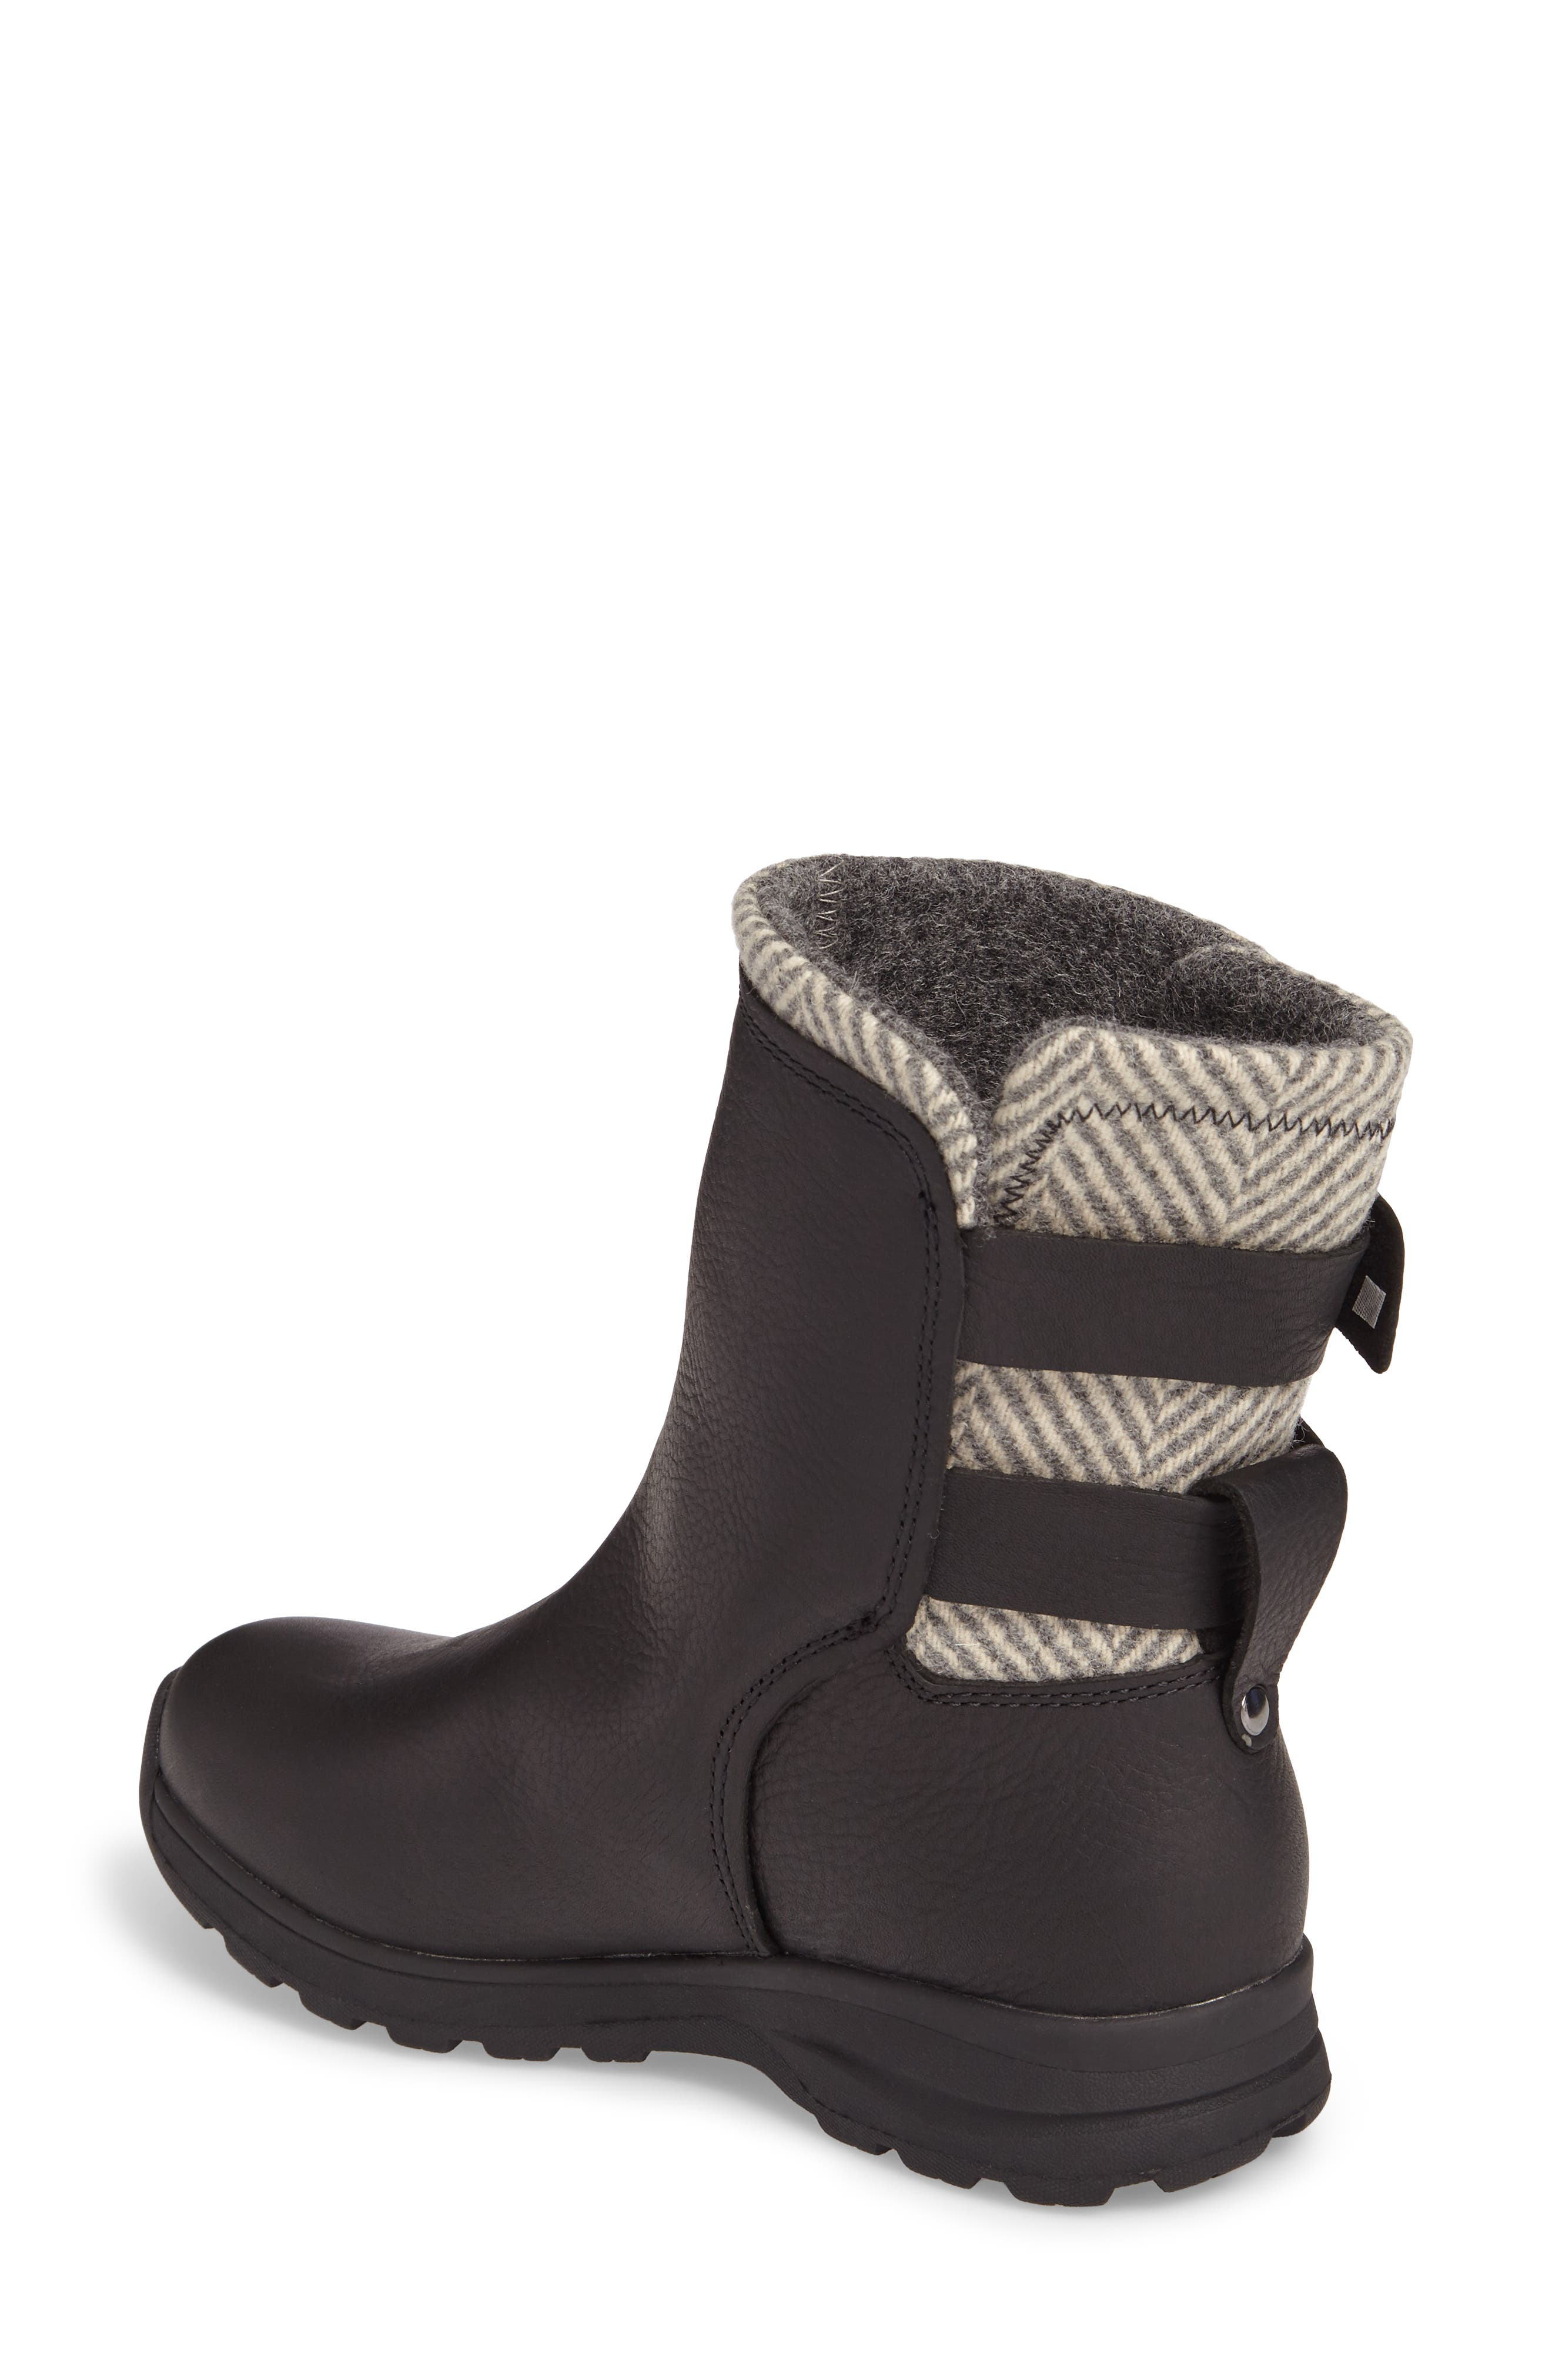 Koosa Waterproof Boot,                             Alternate thumbnail 2, color,                             Black Leather/ Herringbone